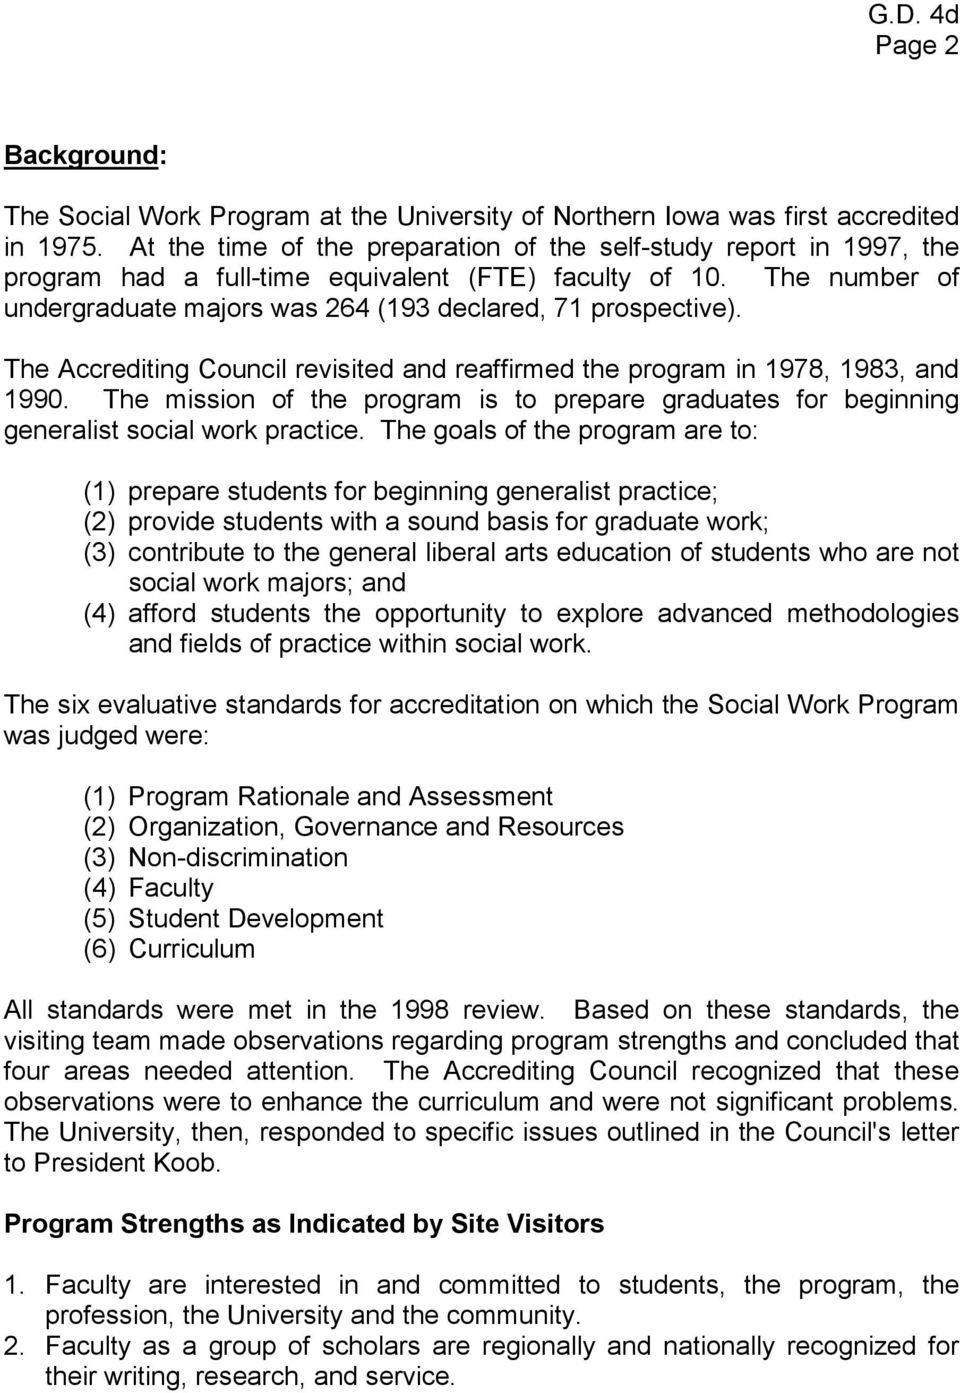 The Accrediting Council revisited and reaffirmed the program in 1978, 1983, and 1990. The mission of the program is to prepare graduates for beginning generalist social work practice.